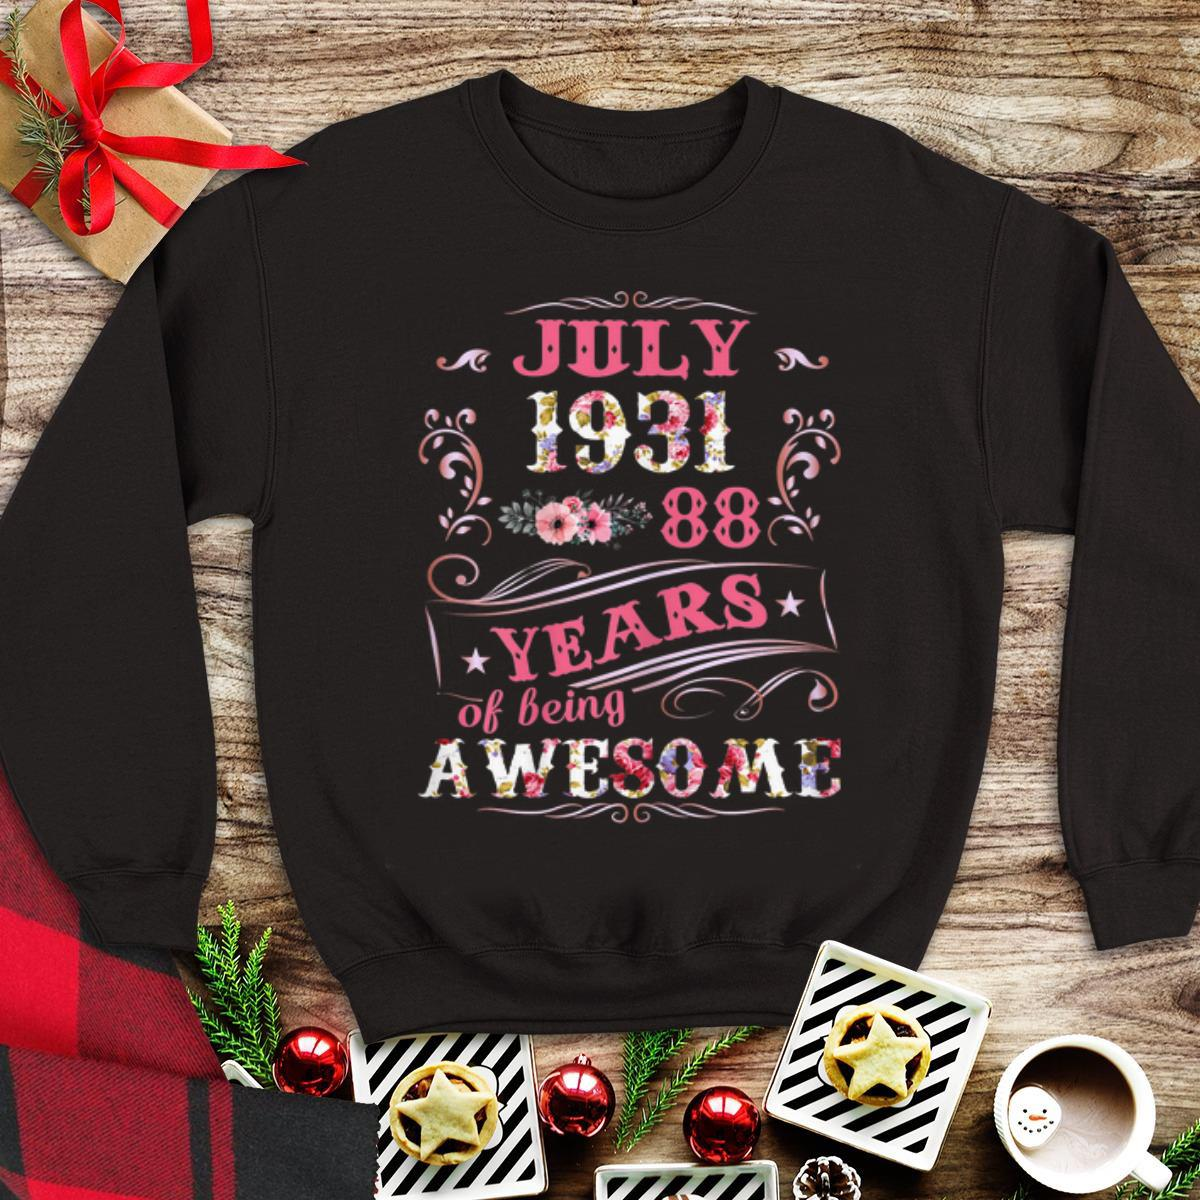 July 1931 88 Years Of Being Awesome Floral tank top 1 - July 1931 88 Years Of Being Awesome Floral tank top